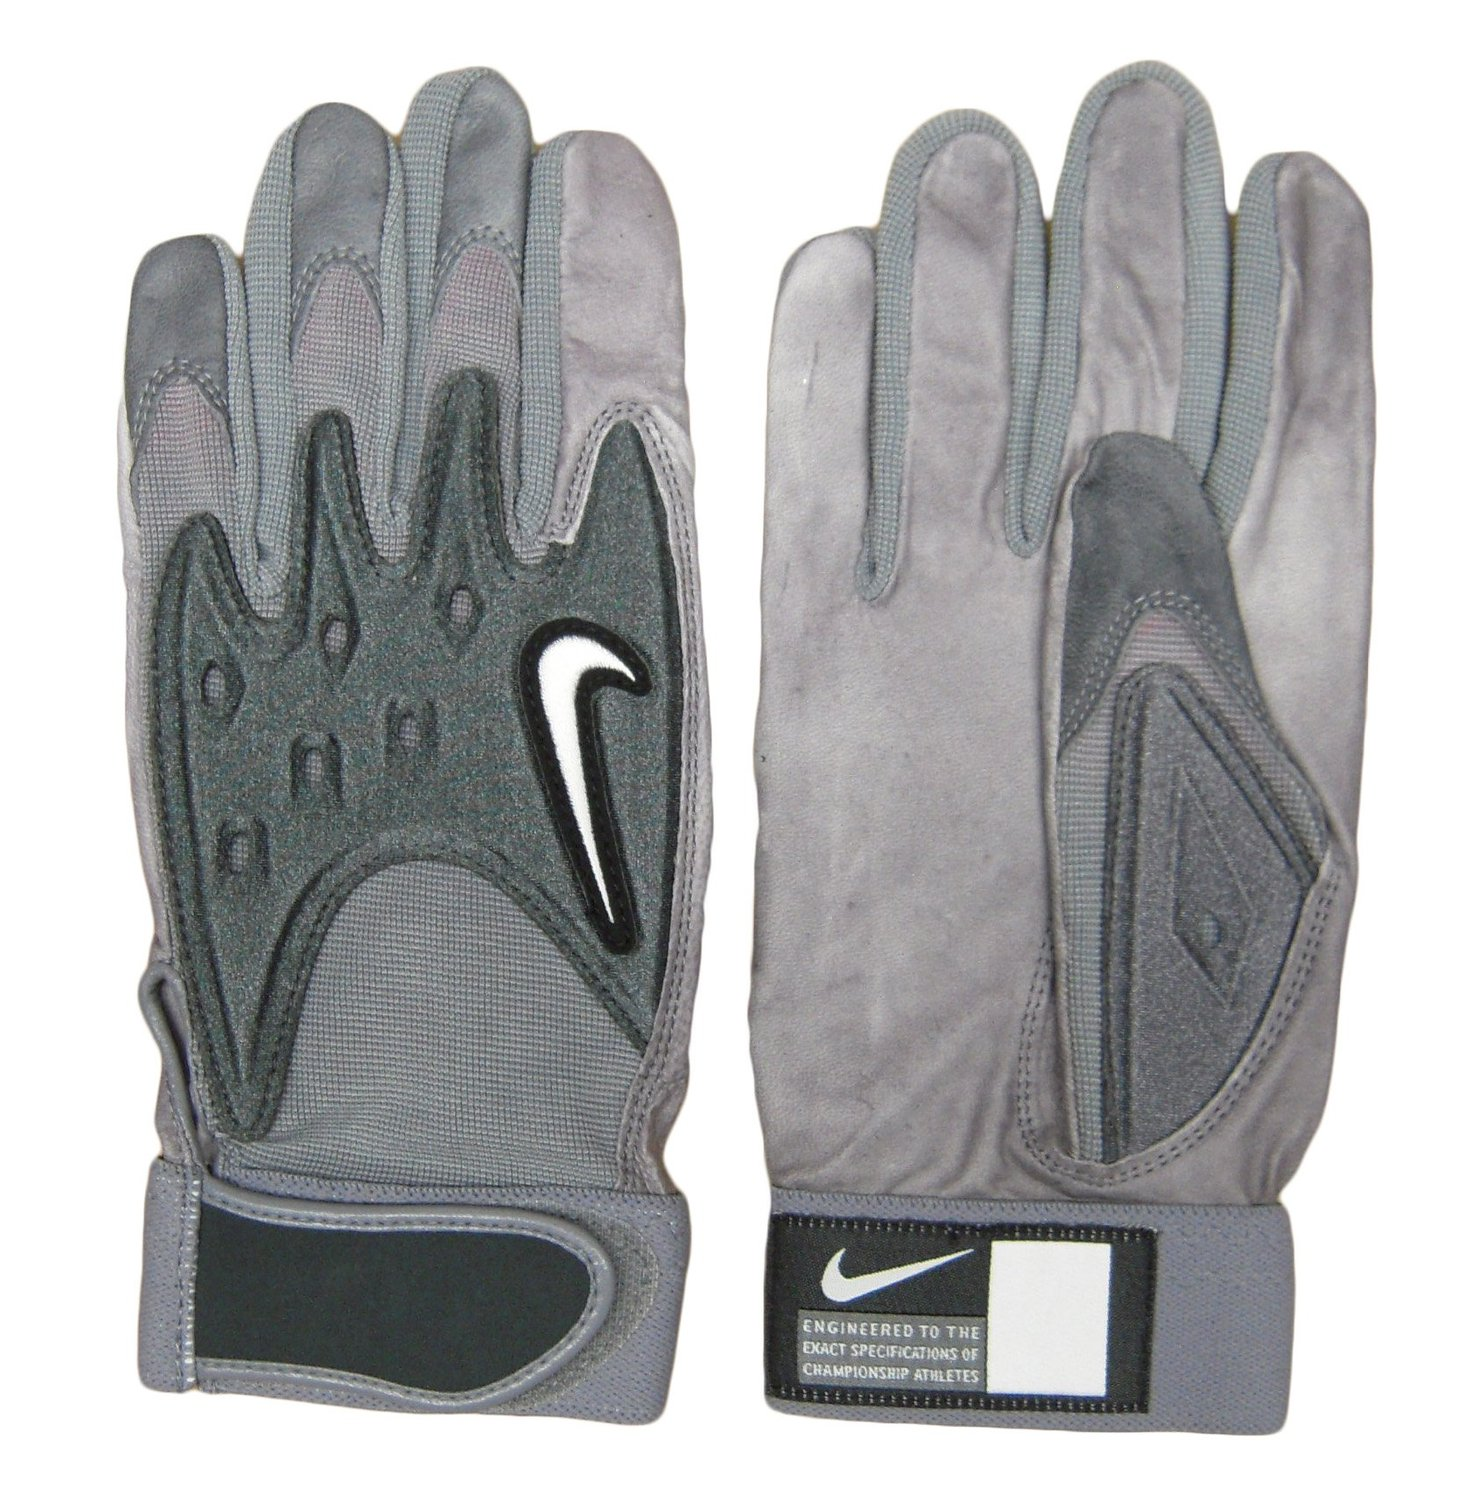 cfbd14ef91e4 Get Quotations · Nike College D-Tack III Men s Football Gloves - Leather  Palm - Size Large